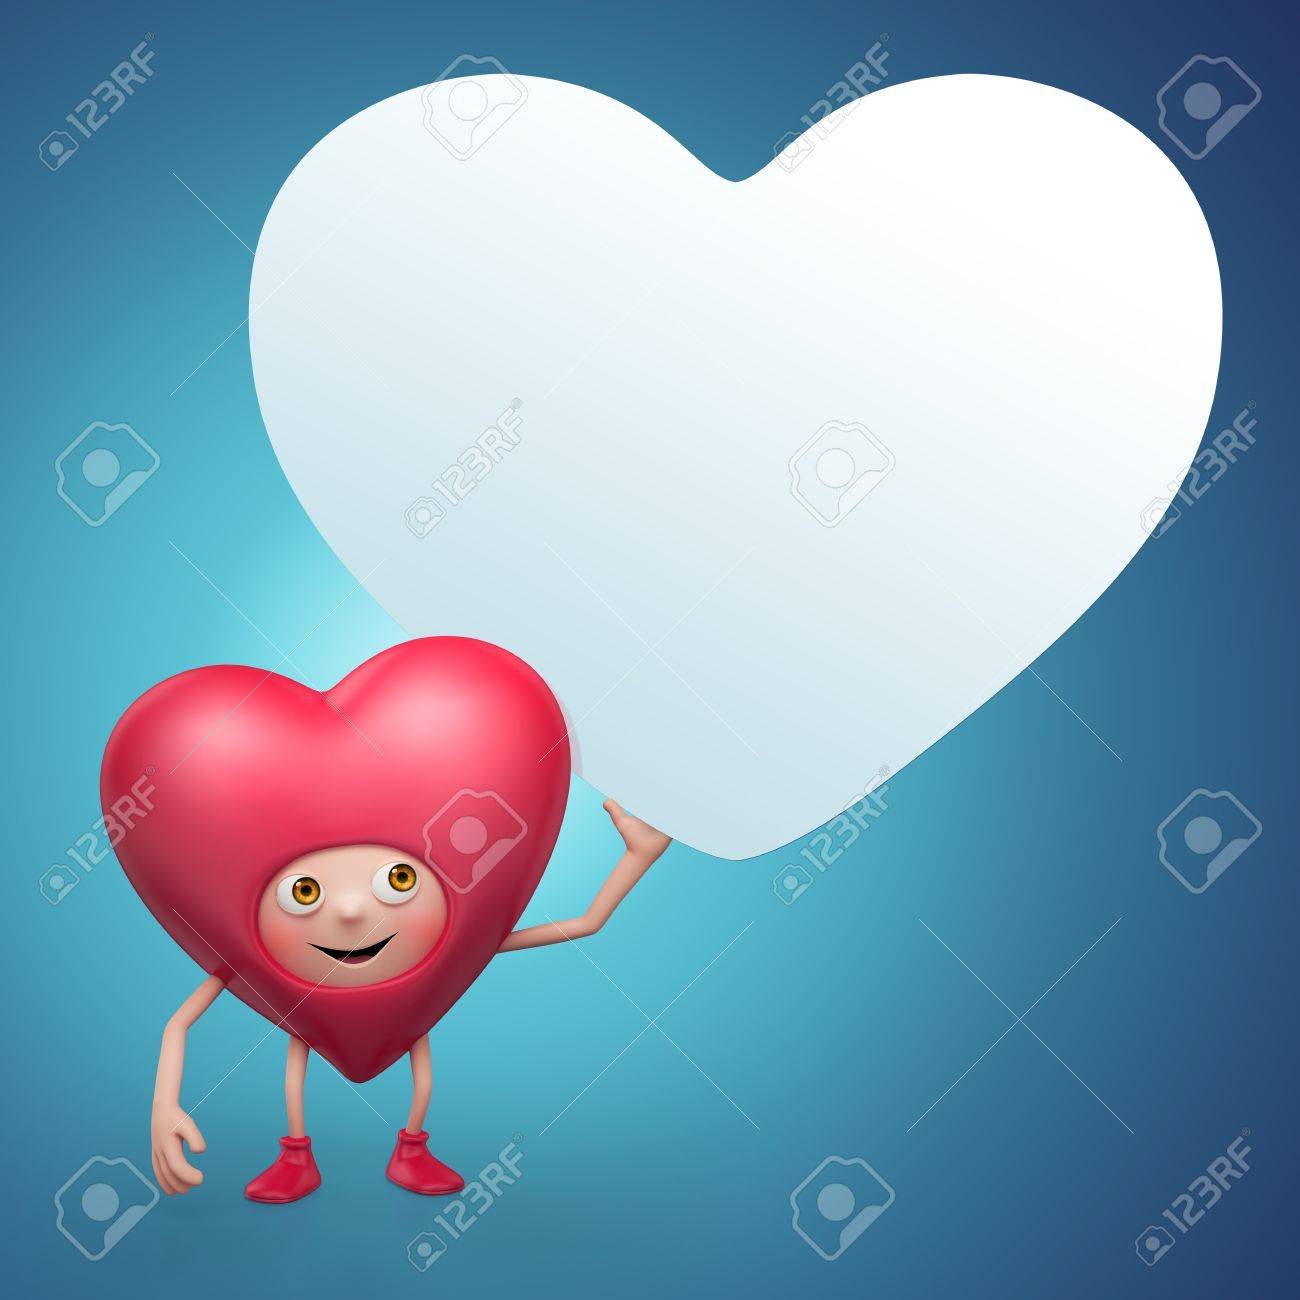 Cute Valentine heart cartoon holding message banner Stock Photo - 16974846